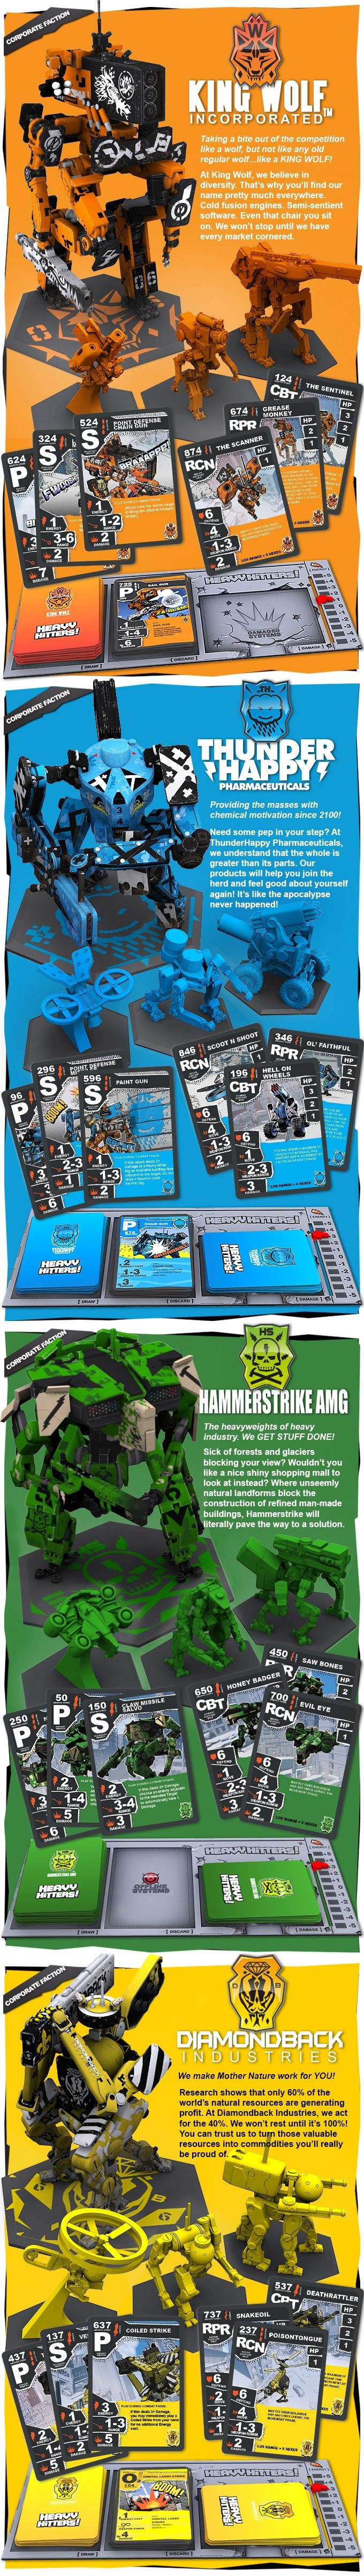 GKR Heavy Hitters Robot Combat Tabletop Game on Kickstarter  Tabletop Encounters